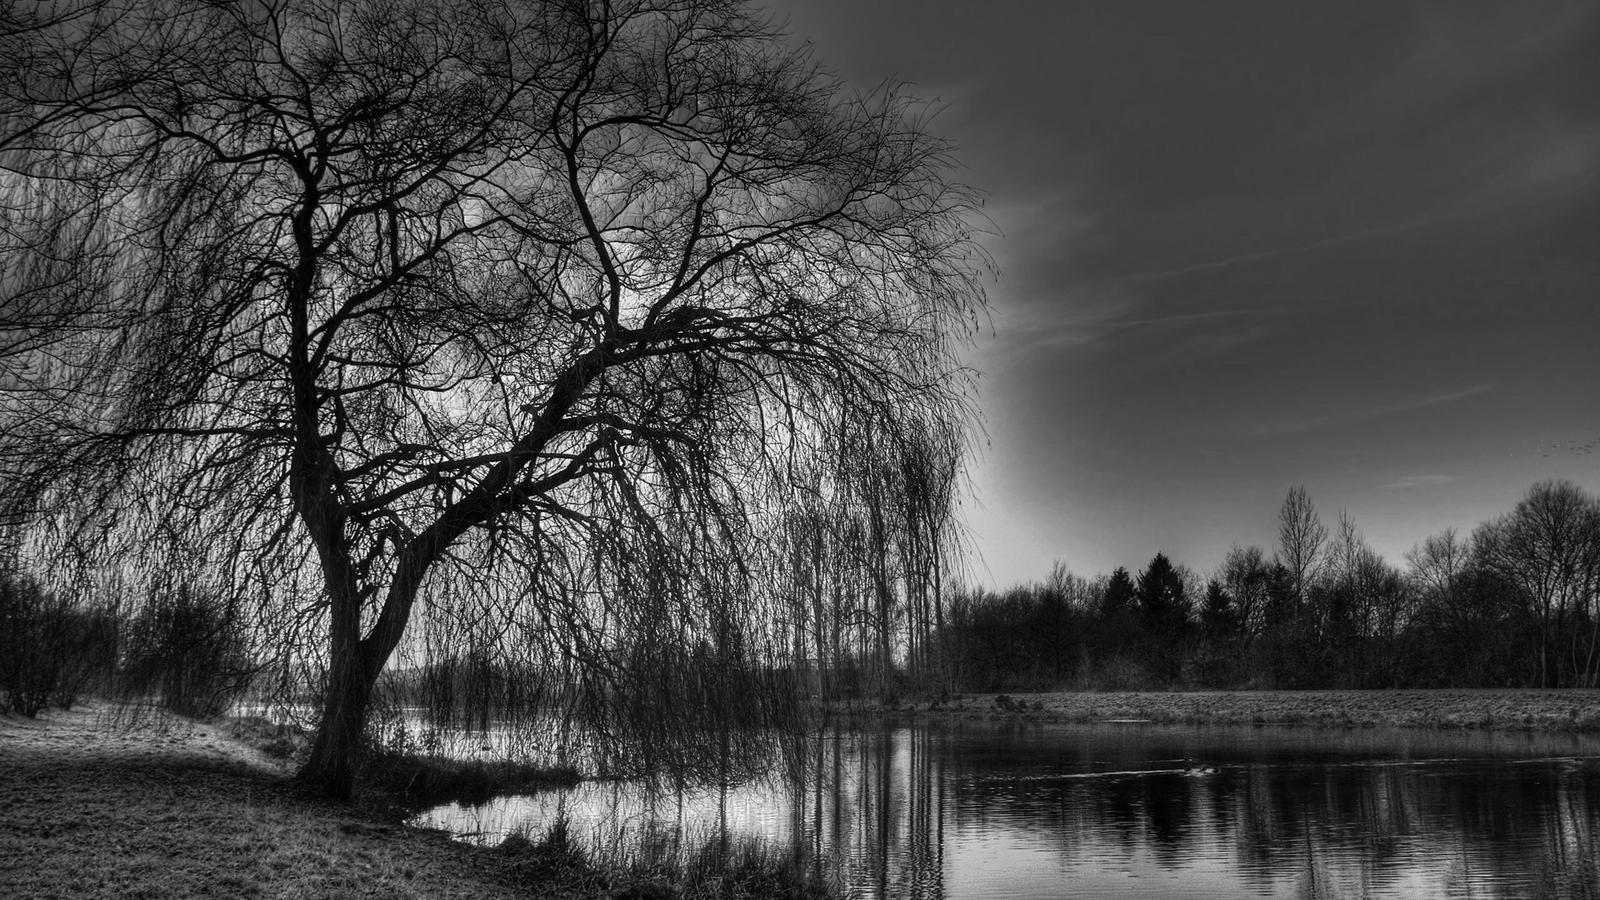 Black And White Nature Wallpapers Top Free Black And White Nature Backgrounds Wallpaperaccess